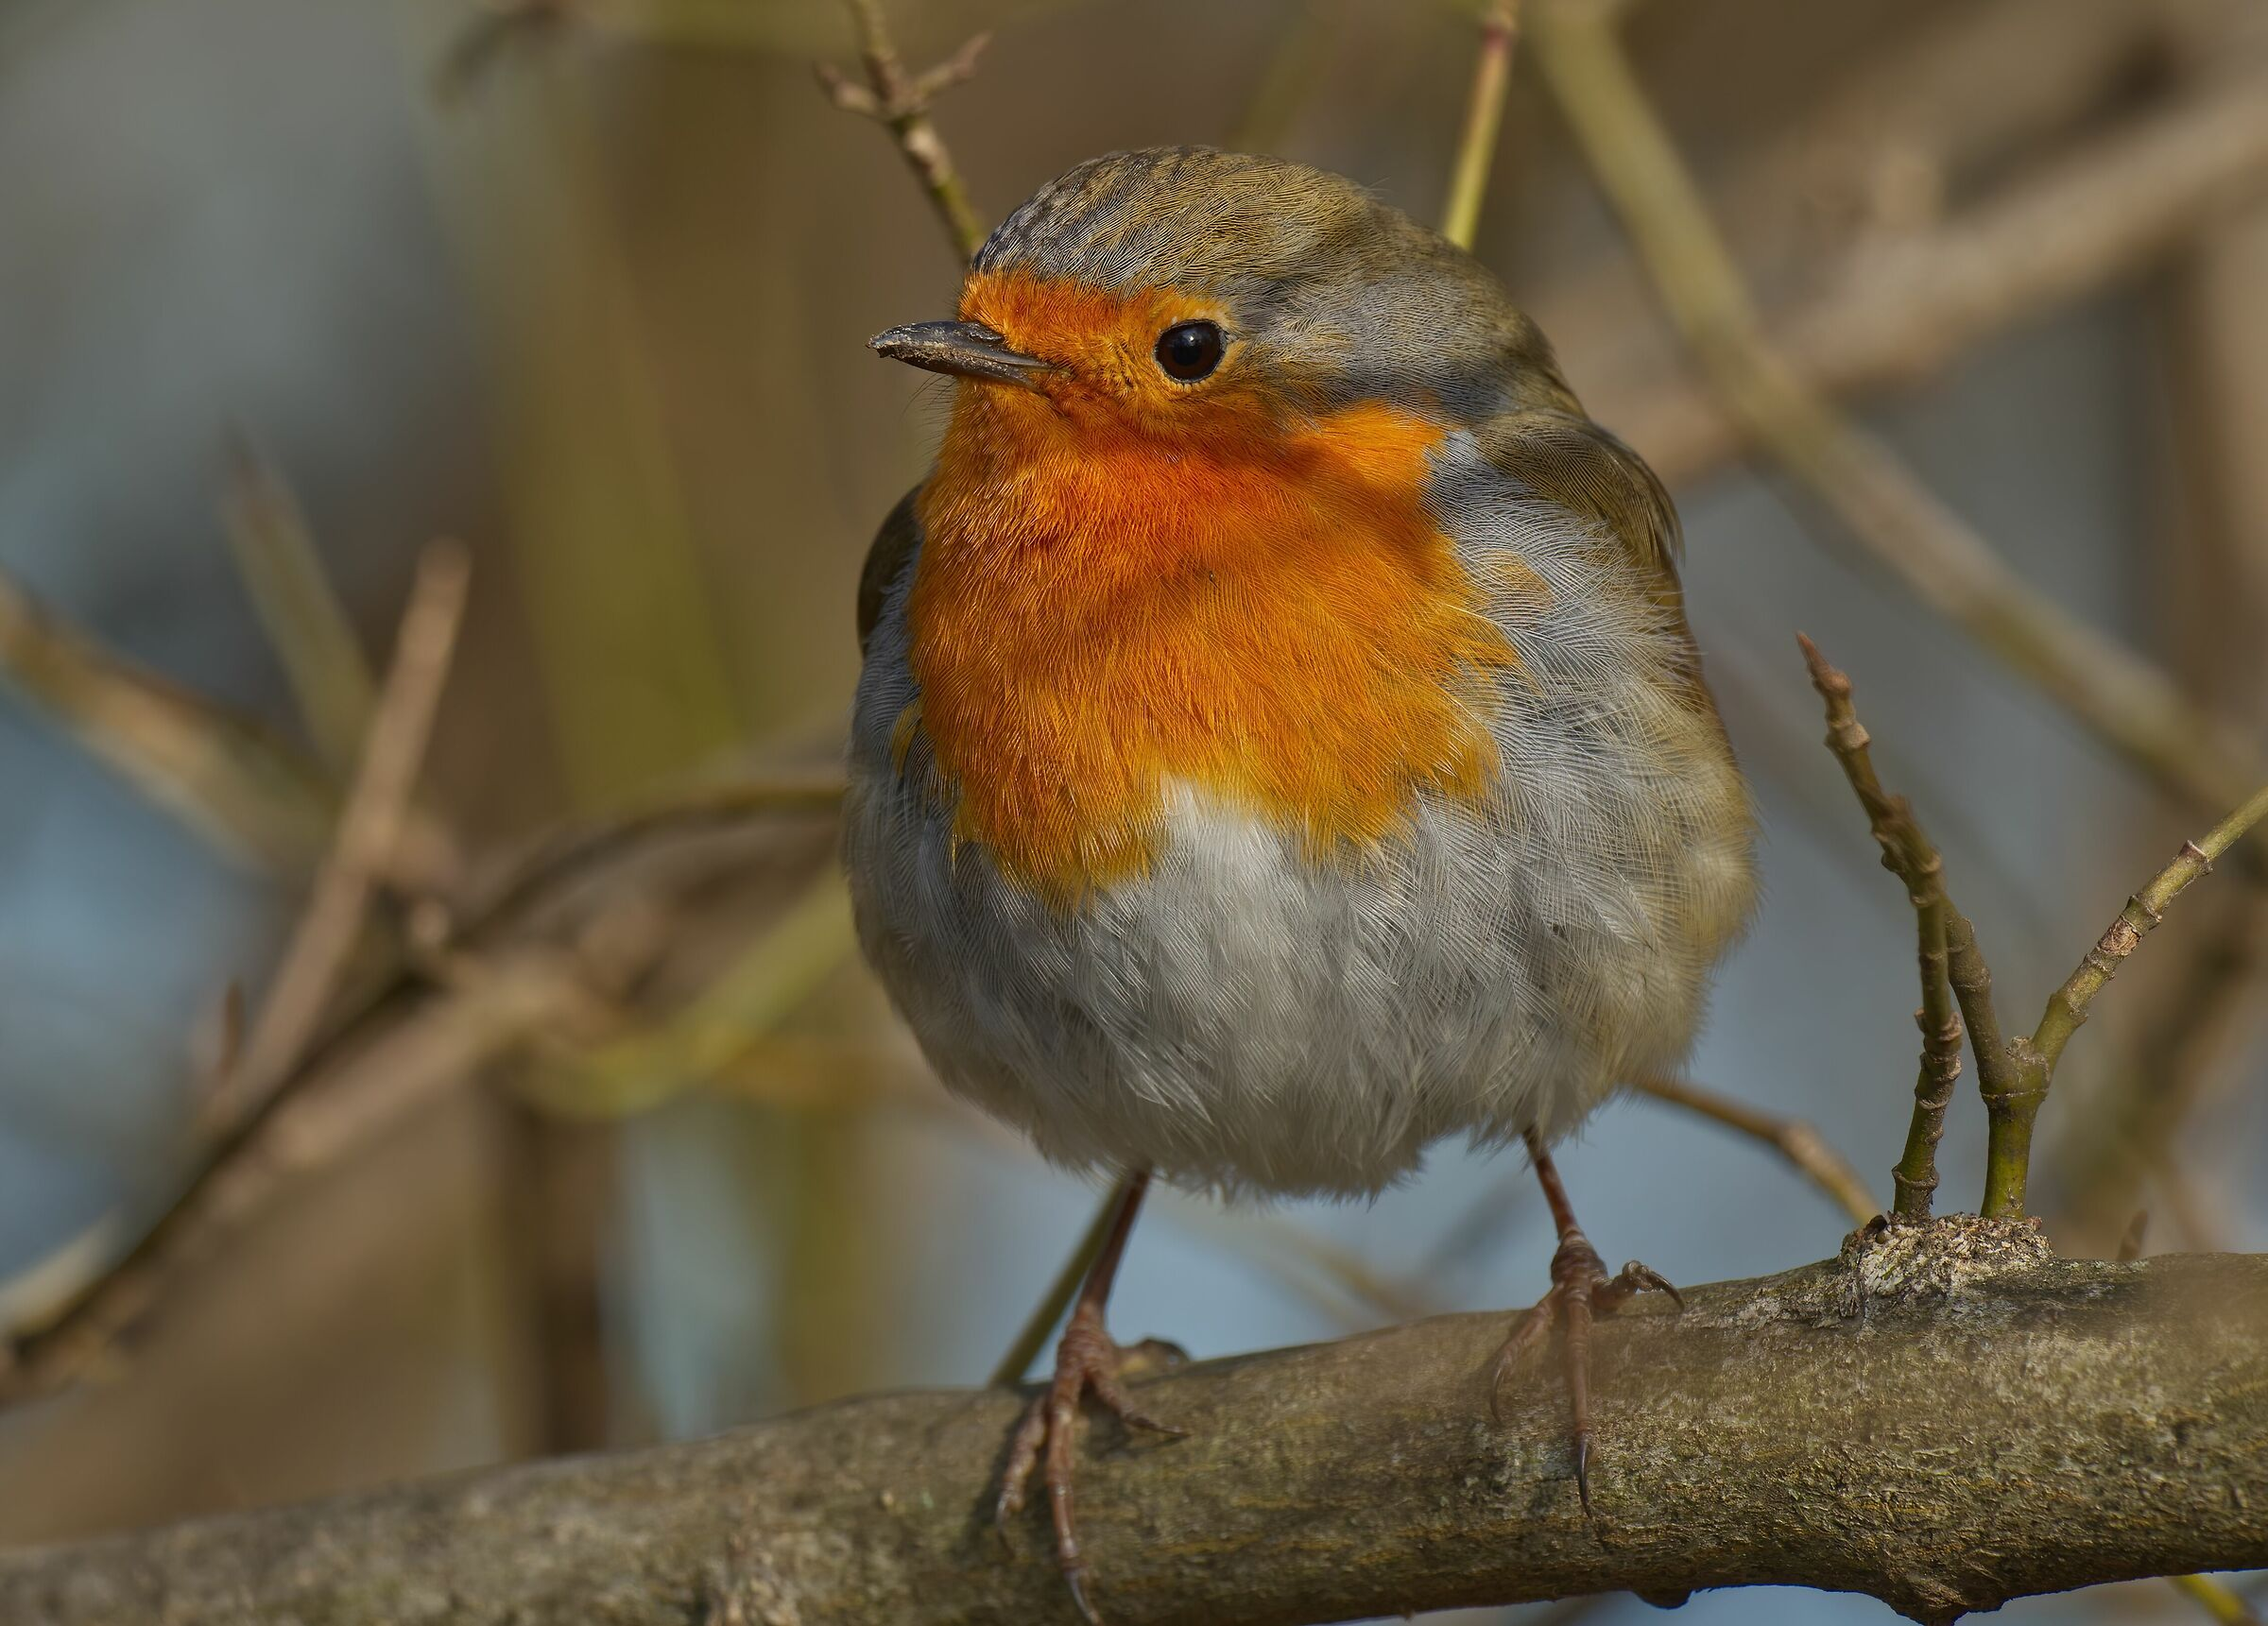 The feathers of the robin...